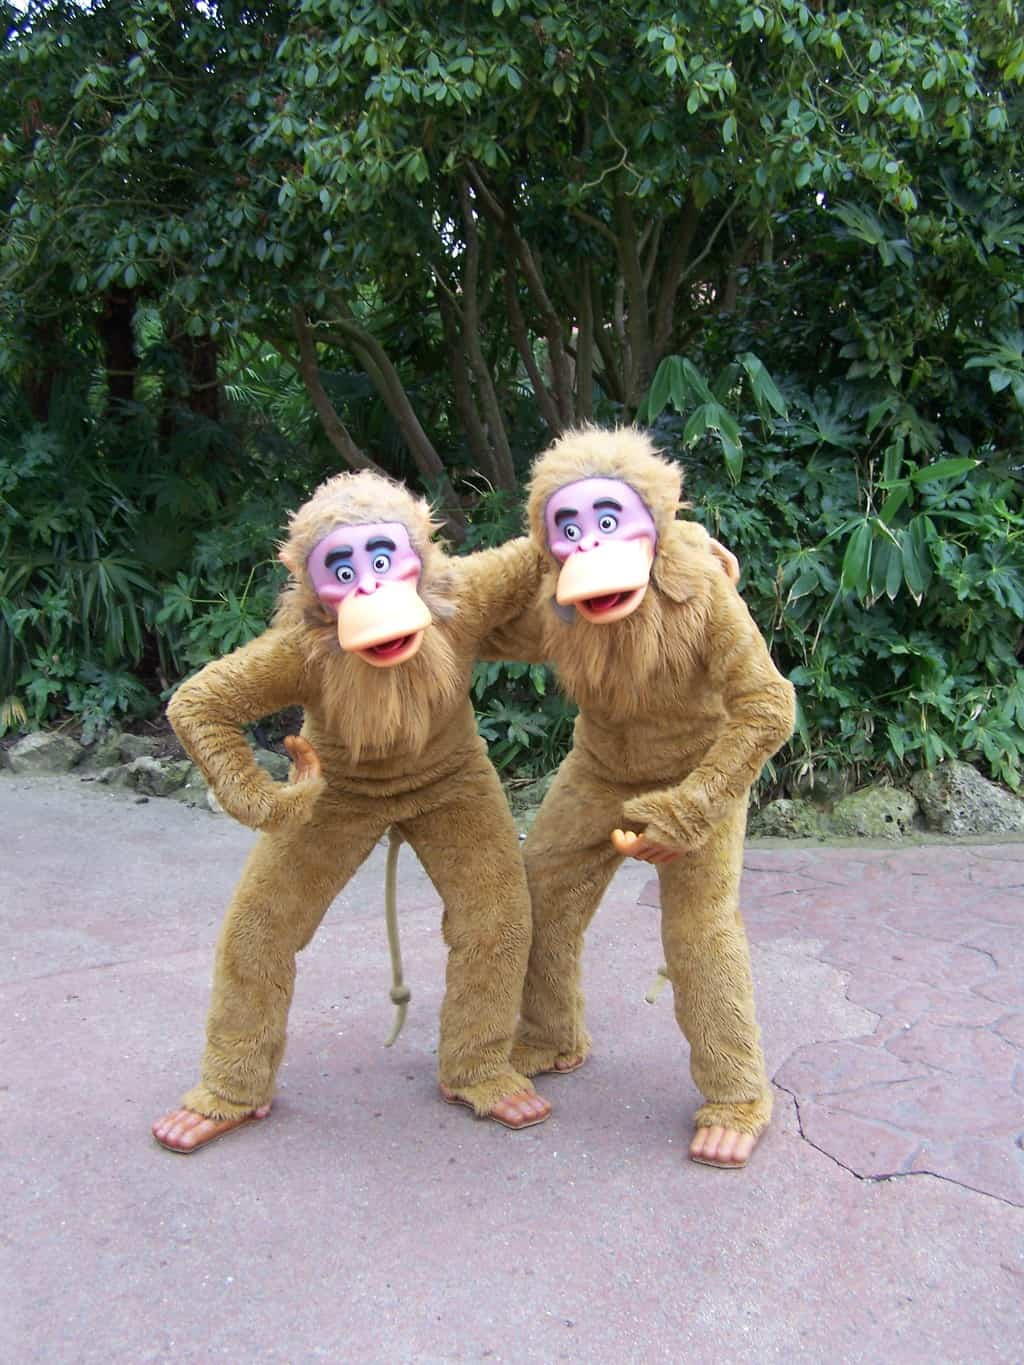 The monkeys from The Jungle Book came out for Meet'n'Greets for years, but sadly have disappeared for some time now. The last time they were out was on the 12th of April 2012 during the 20th Anniversary Celebrations that day.